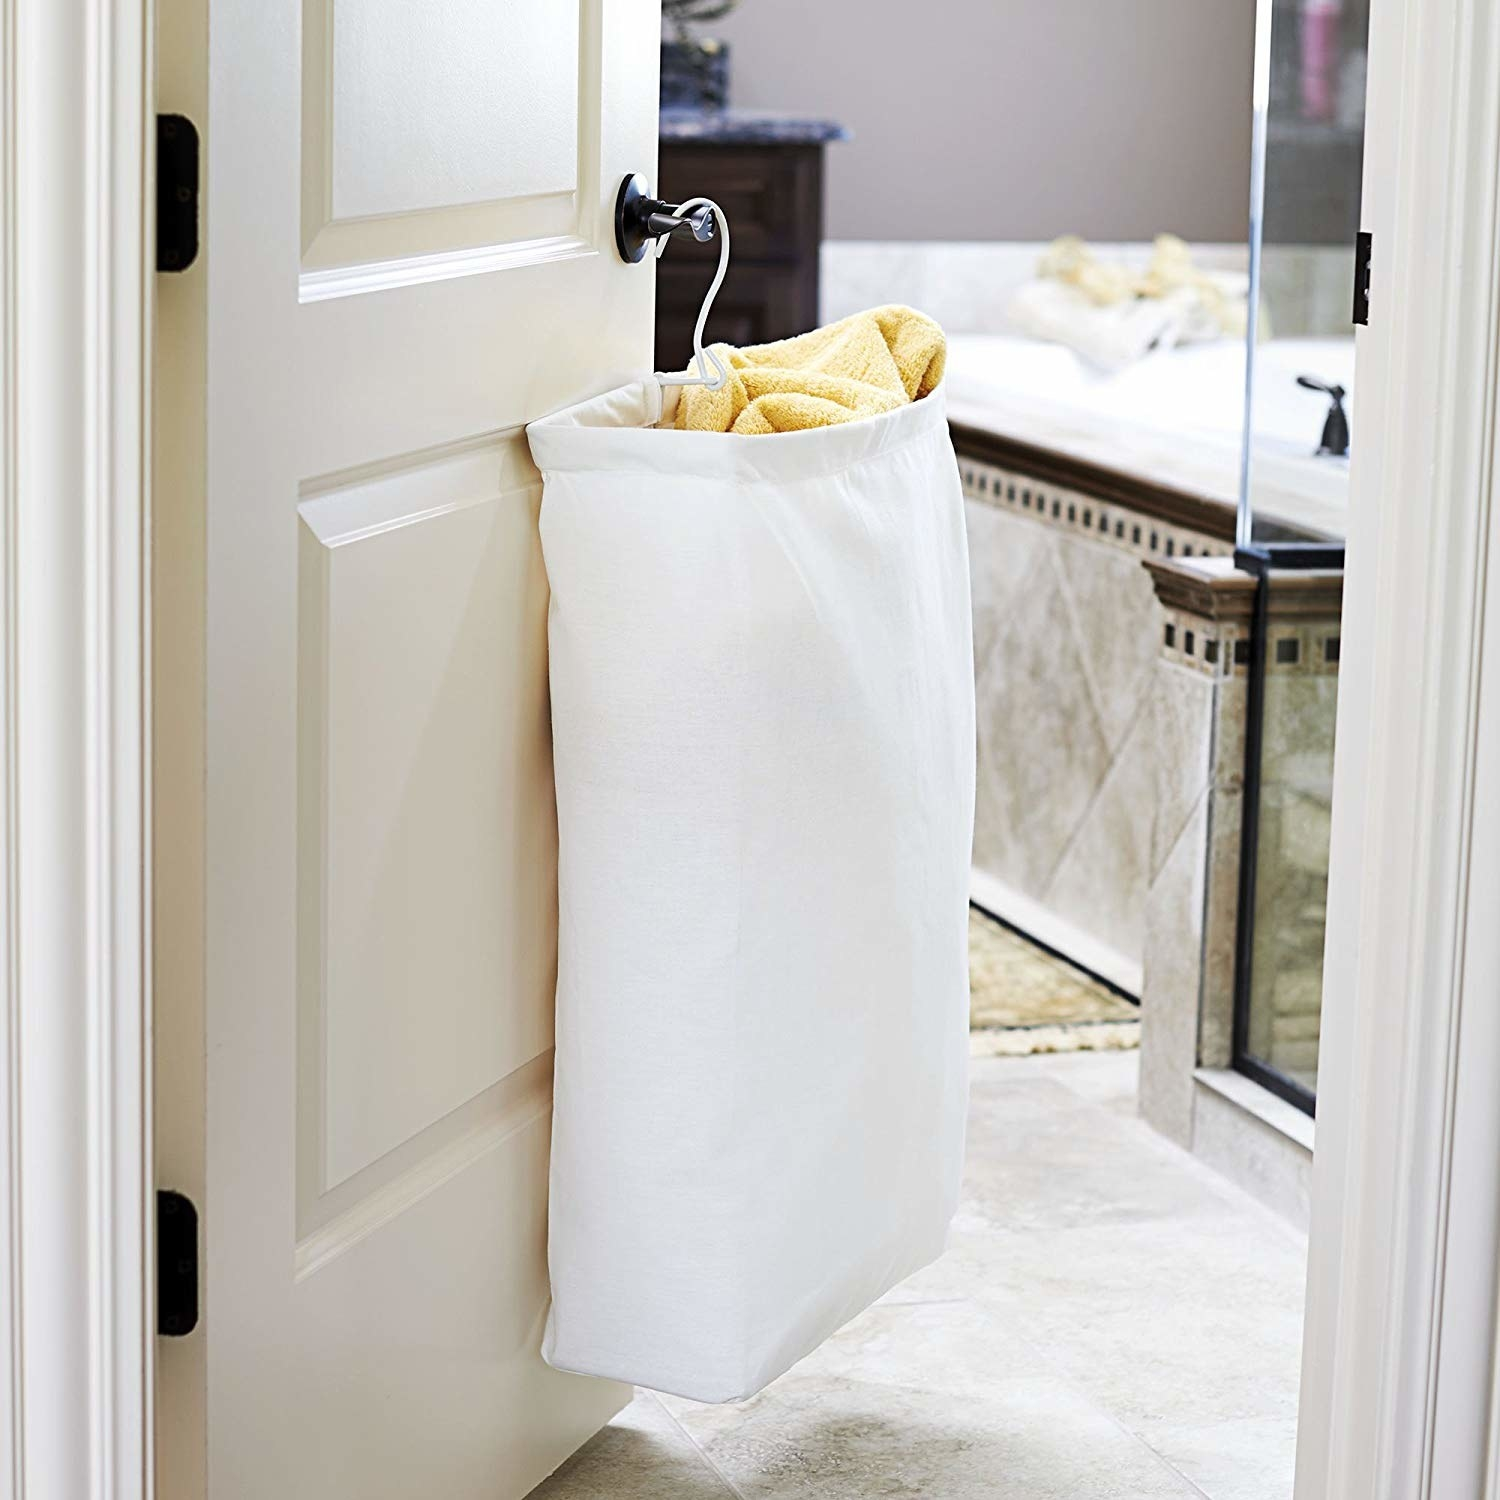 Canvas laundry bag hanging on door knob